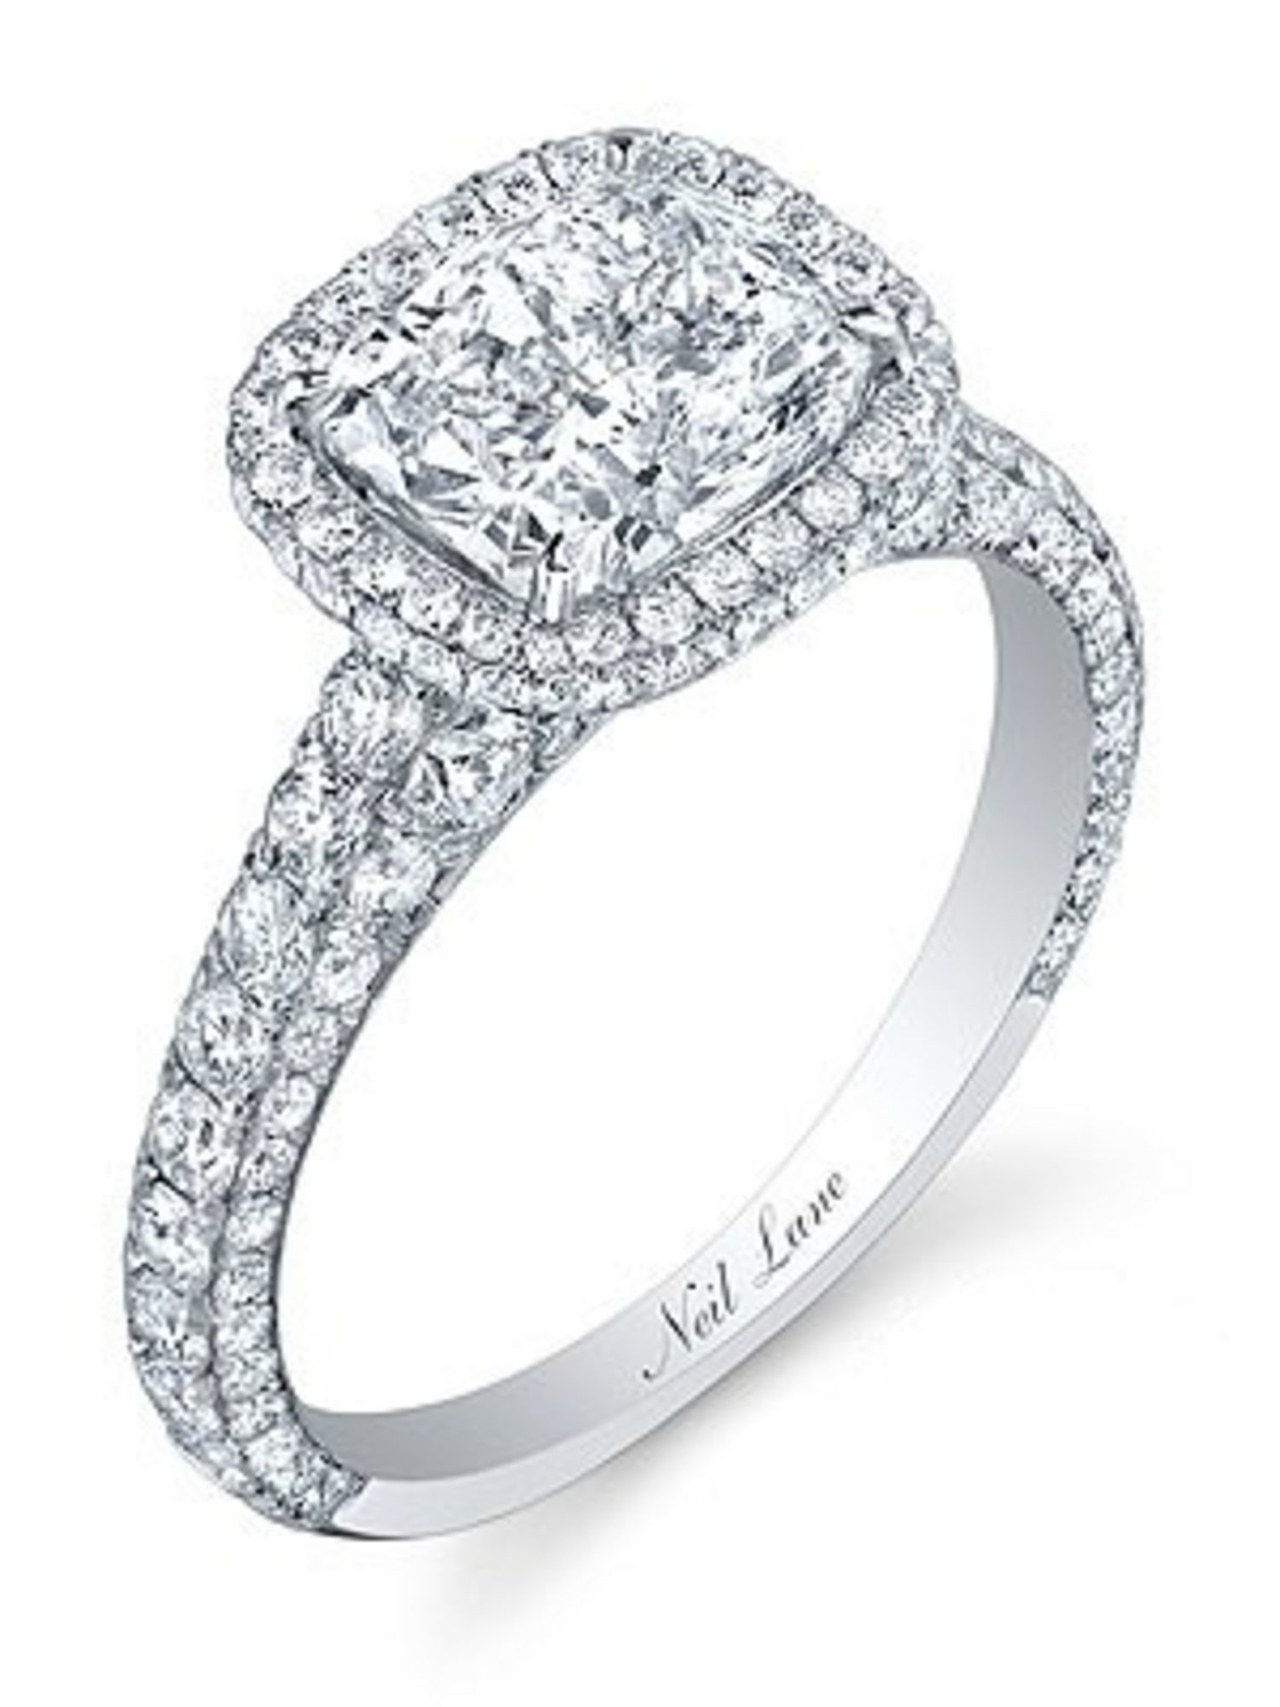 22 bachelor bachelorette engagement ring pictures ashley hebert jp rosenbaum 0606 courtesy